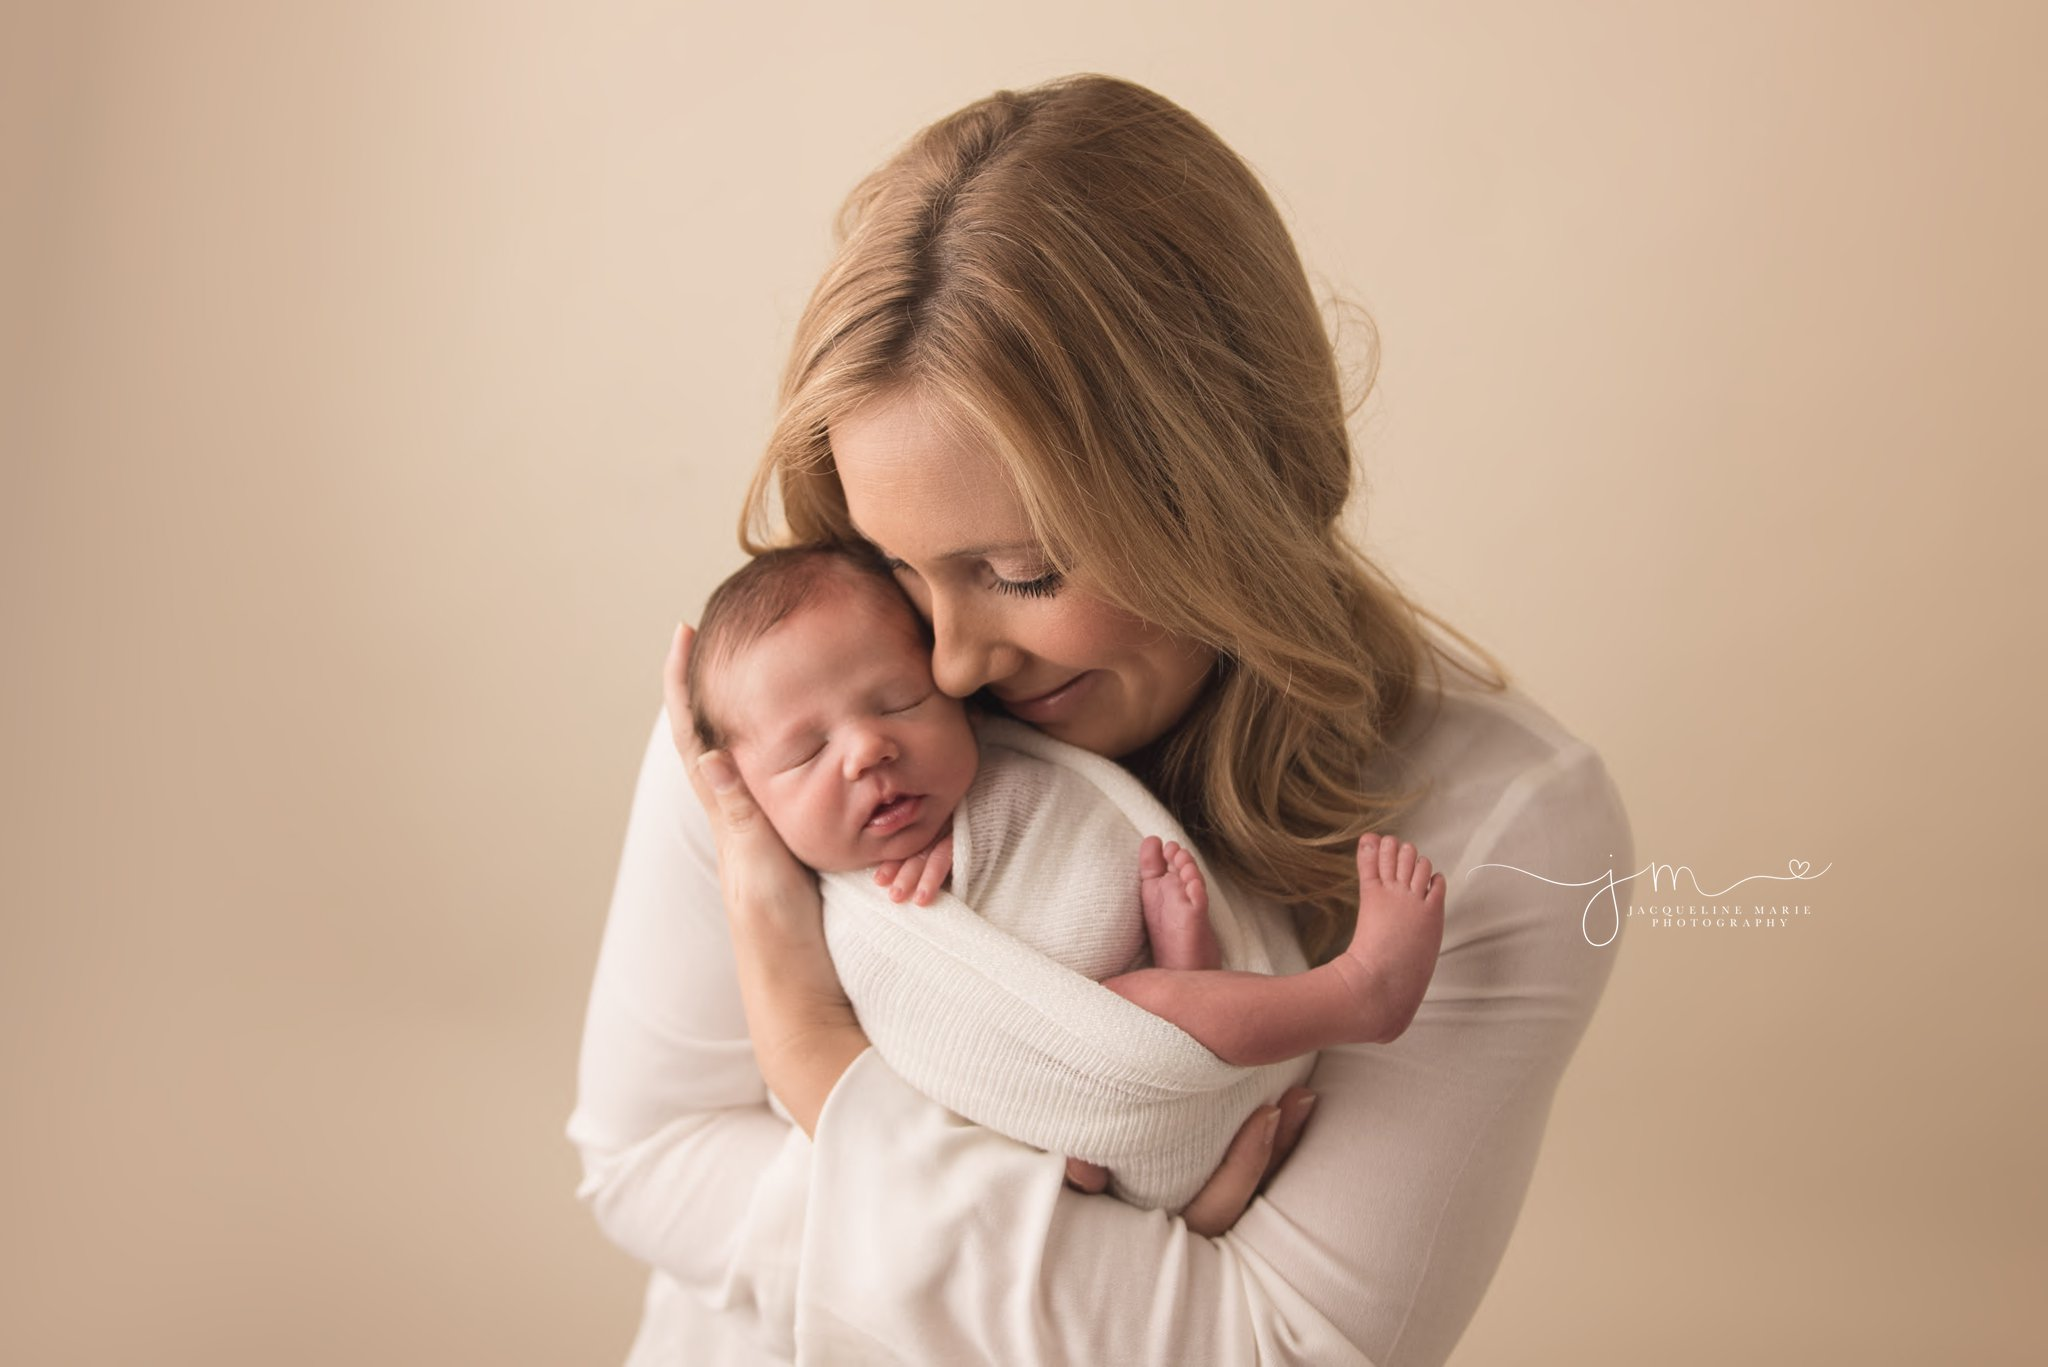 columbus ohio newborn photographer feature image of mother holding son and showing love by smiling at him